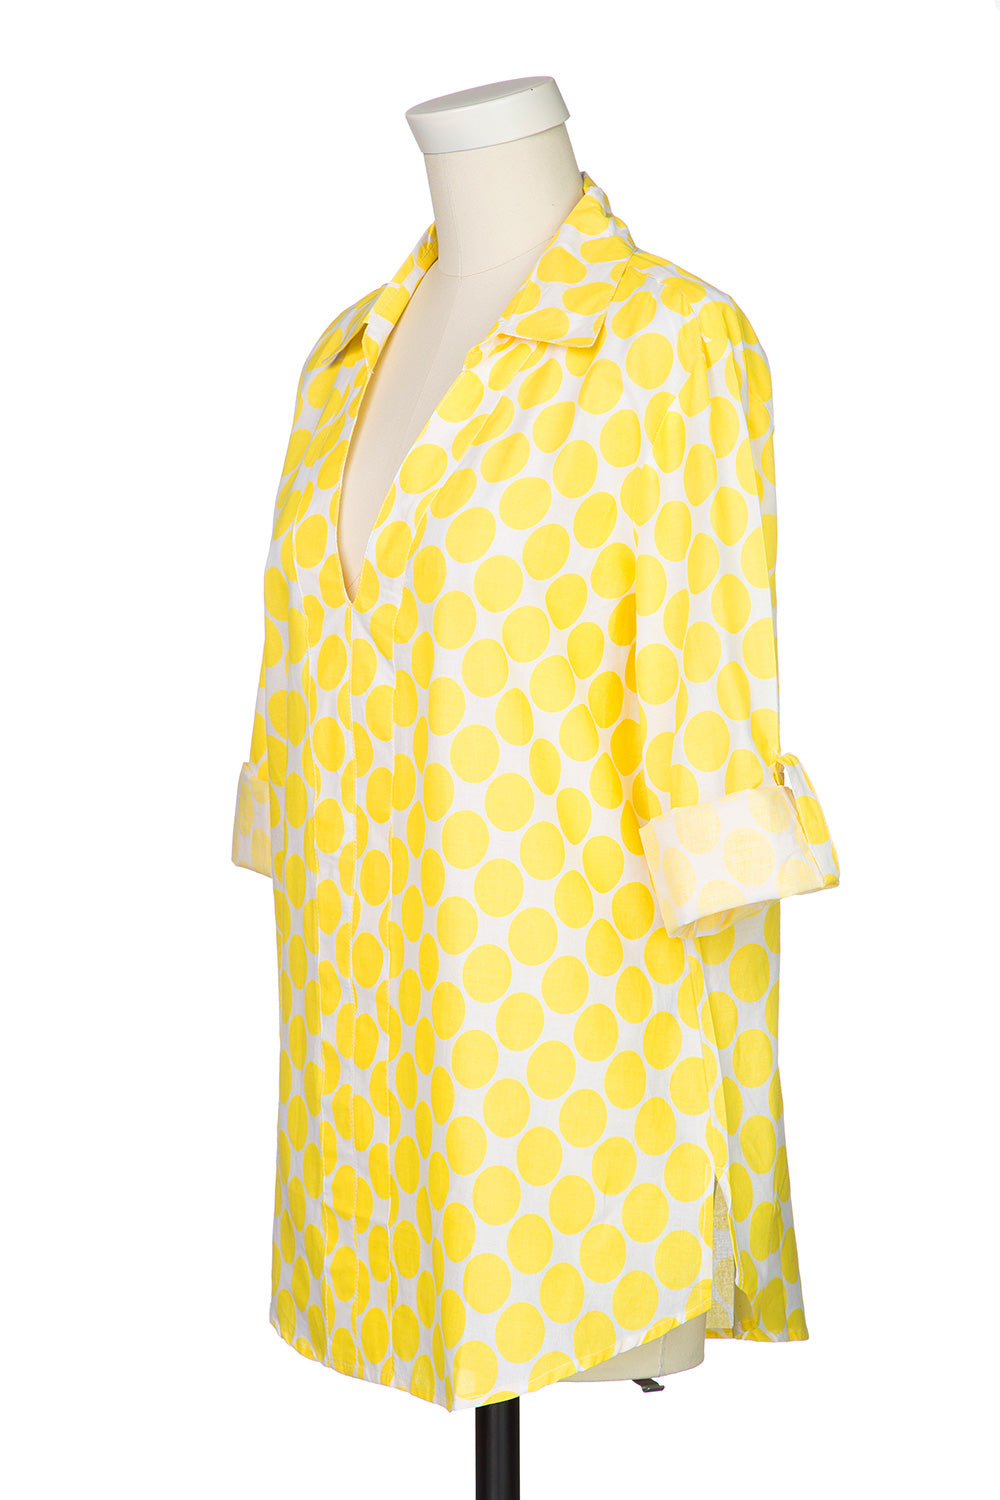 Type 1 Polka Party Top in Yellow